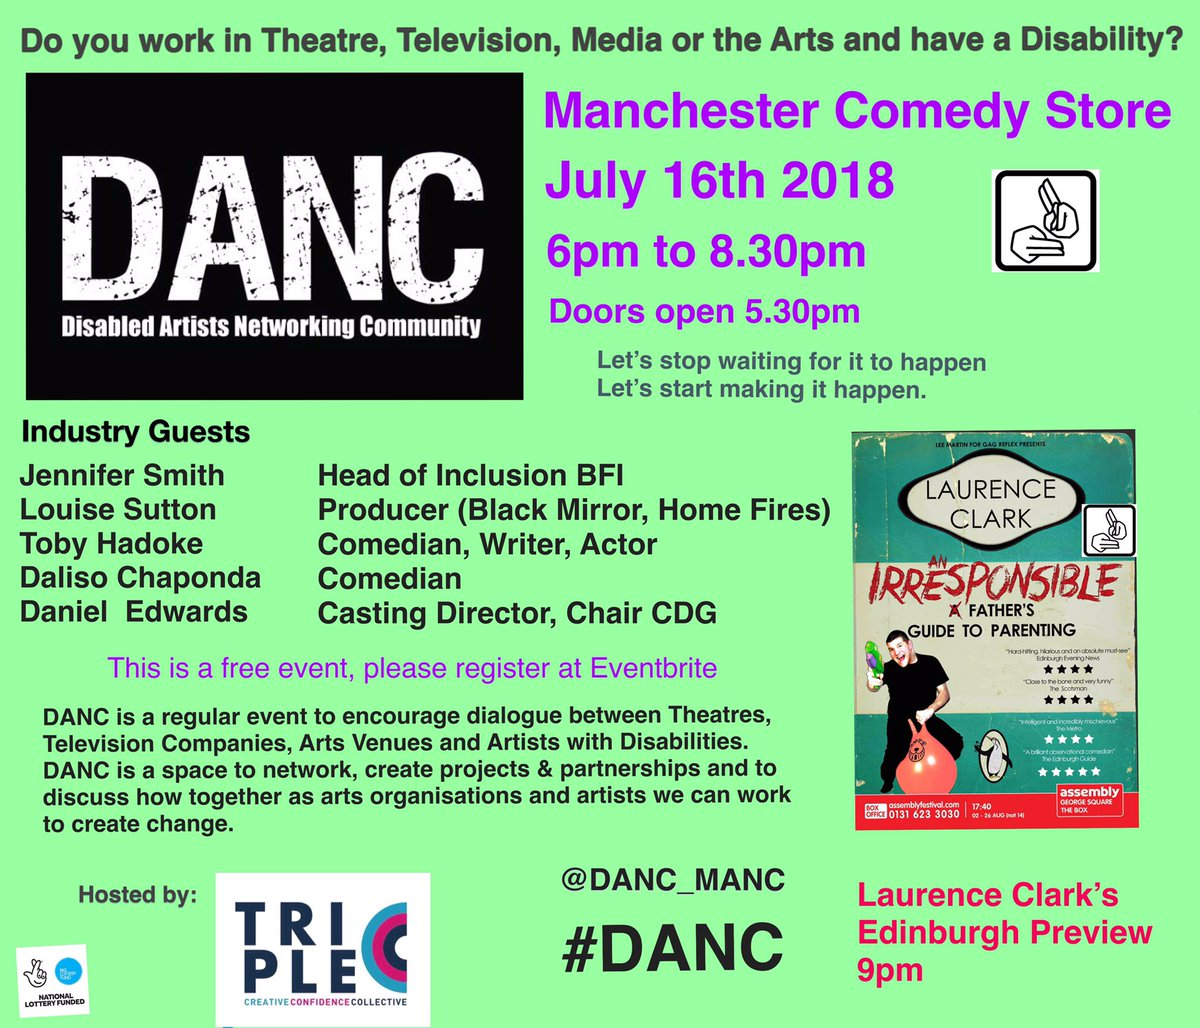 WE HAVE NOW ANNOUNCED OUR INDUSTRY GUESTS FOR THE NEXT DANC EVENT!!! It&#39;s going to be incredible!  If you&#39;re a professional artist/performer/creative with a disability, get booked onto the next Disabled Artists Networking Community event!  RETWEET  Book -  https://www. eventbrite.co.uk/e/danc-disable d-artists-networking-community-tickets-46997428574 &nbsp; … <br>http://pic.twitter.com/LKl5nvBdHN